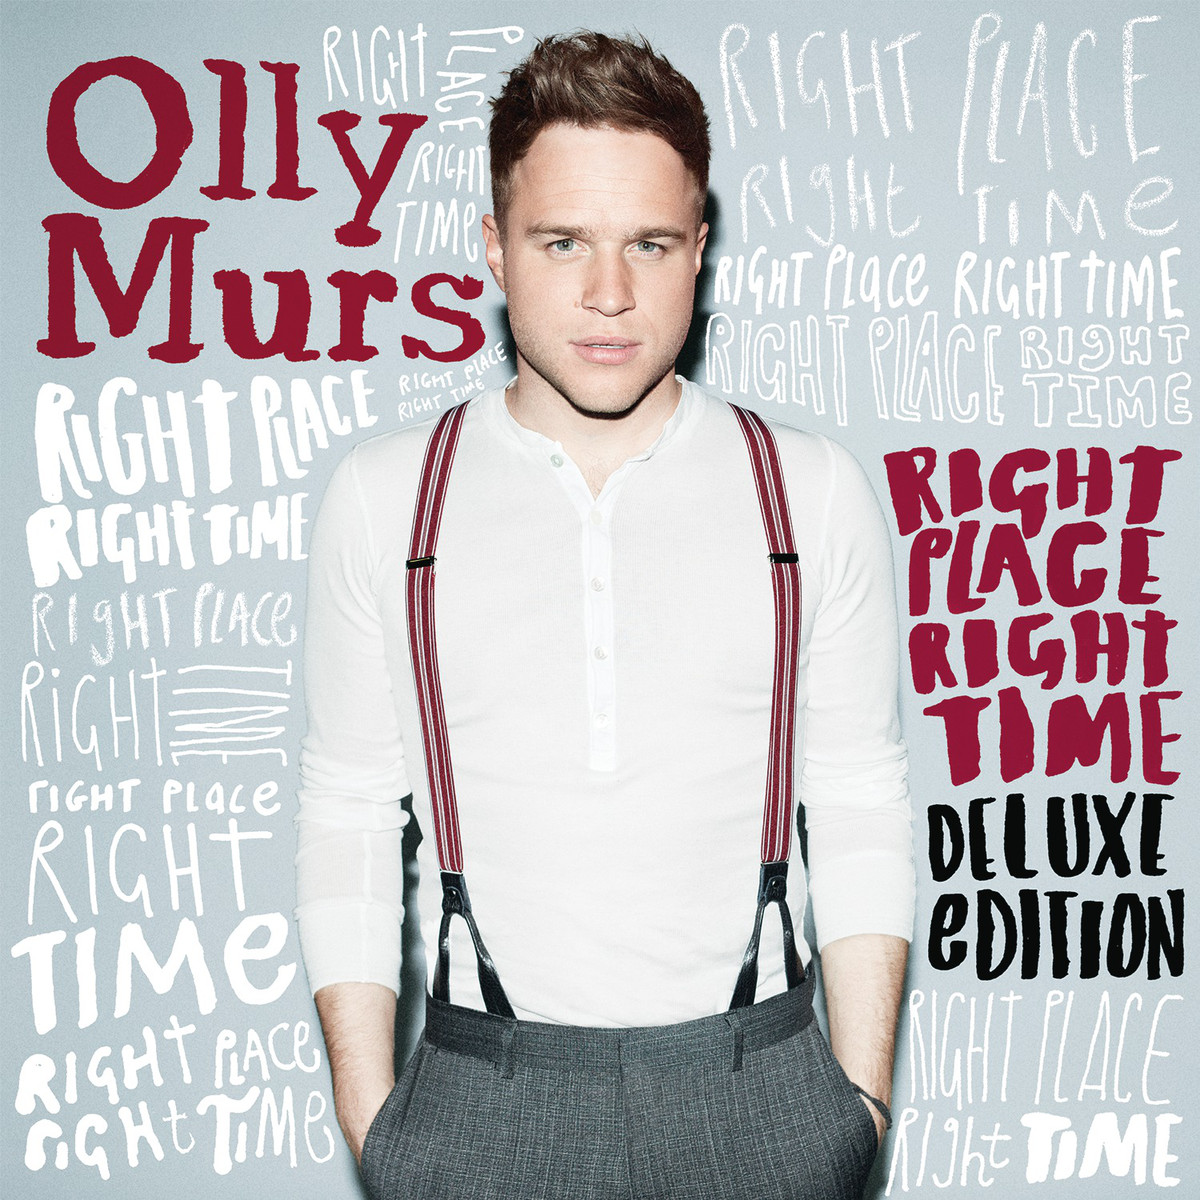 Olly-Murs-Right-Place-Right-Time-Deluxe-Edition-2012-1200x1200.png